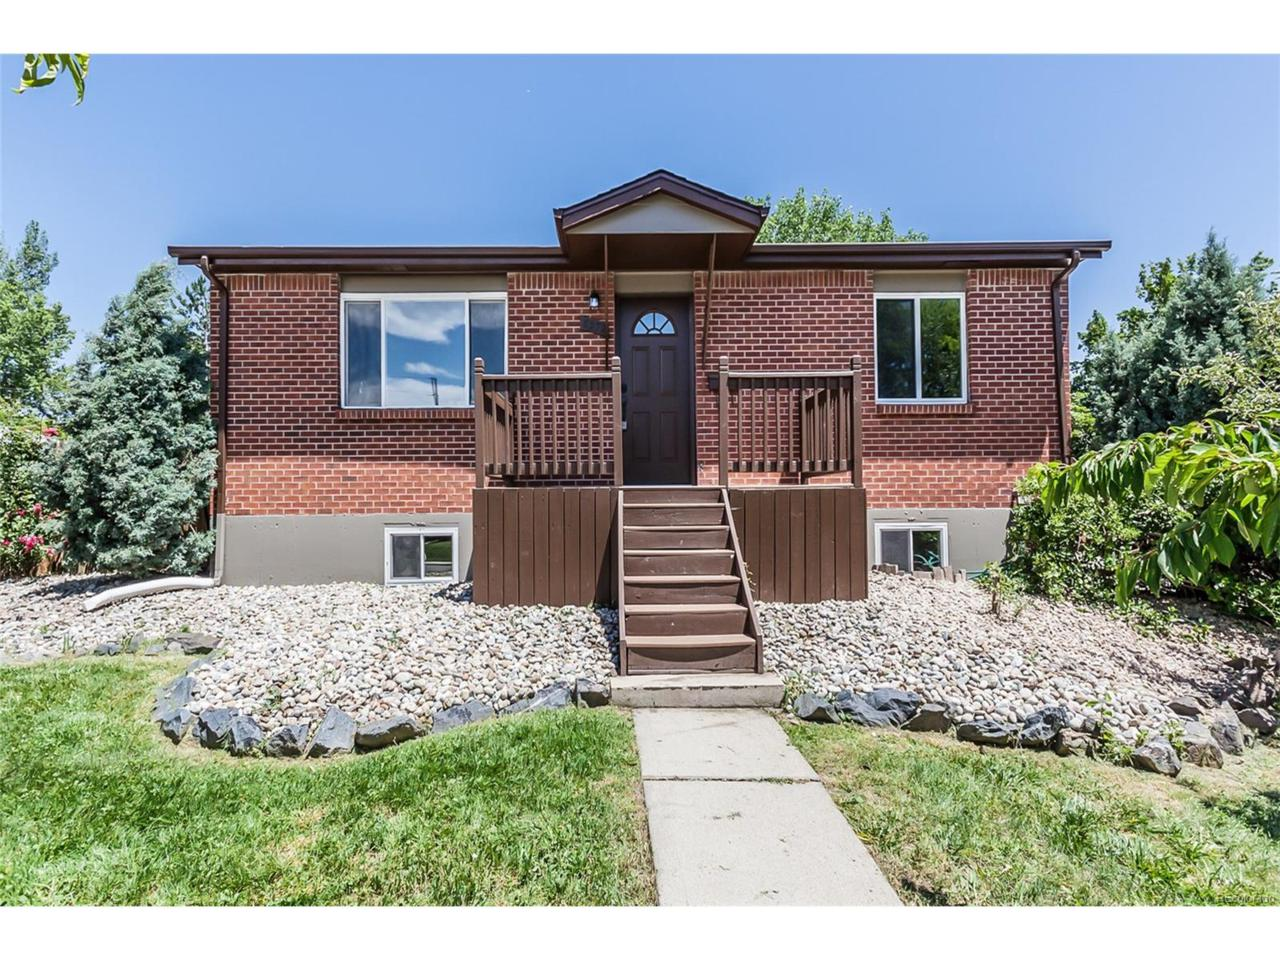 8572 Wagner Drive, Westminster, CO 80031 (MLS #7784367) :: 8z Real Estate